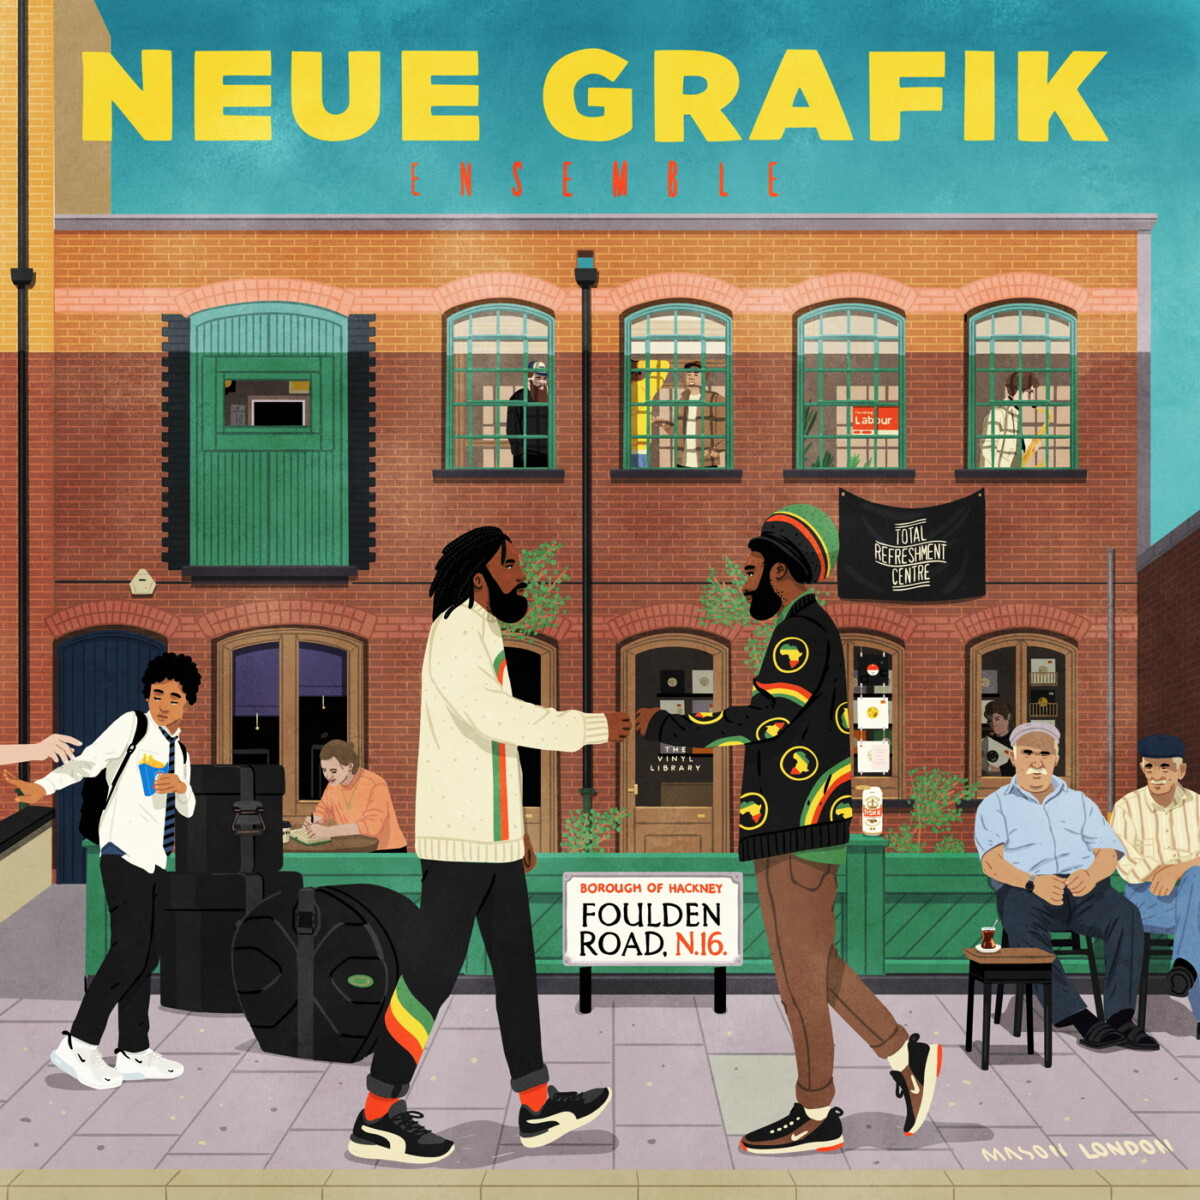 Foulden-Road-Neue-Grafik-Ensemble.jpg